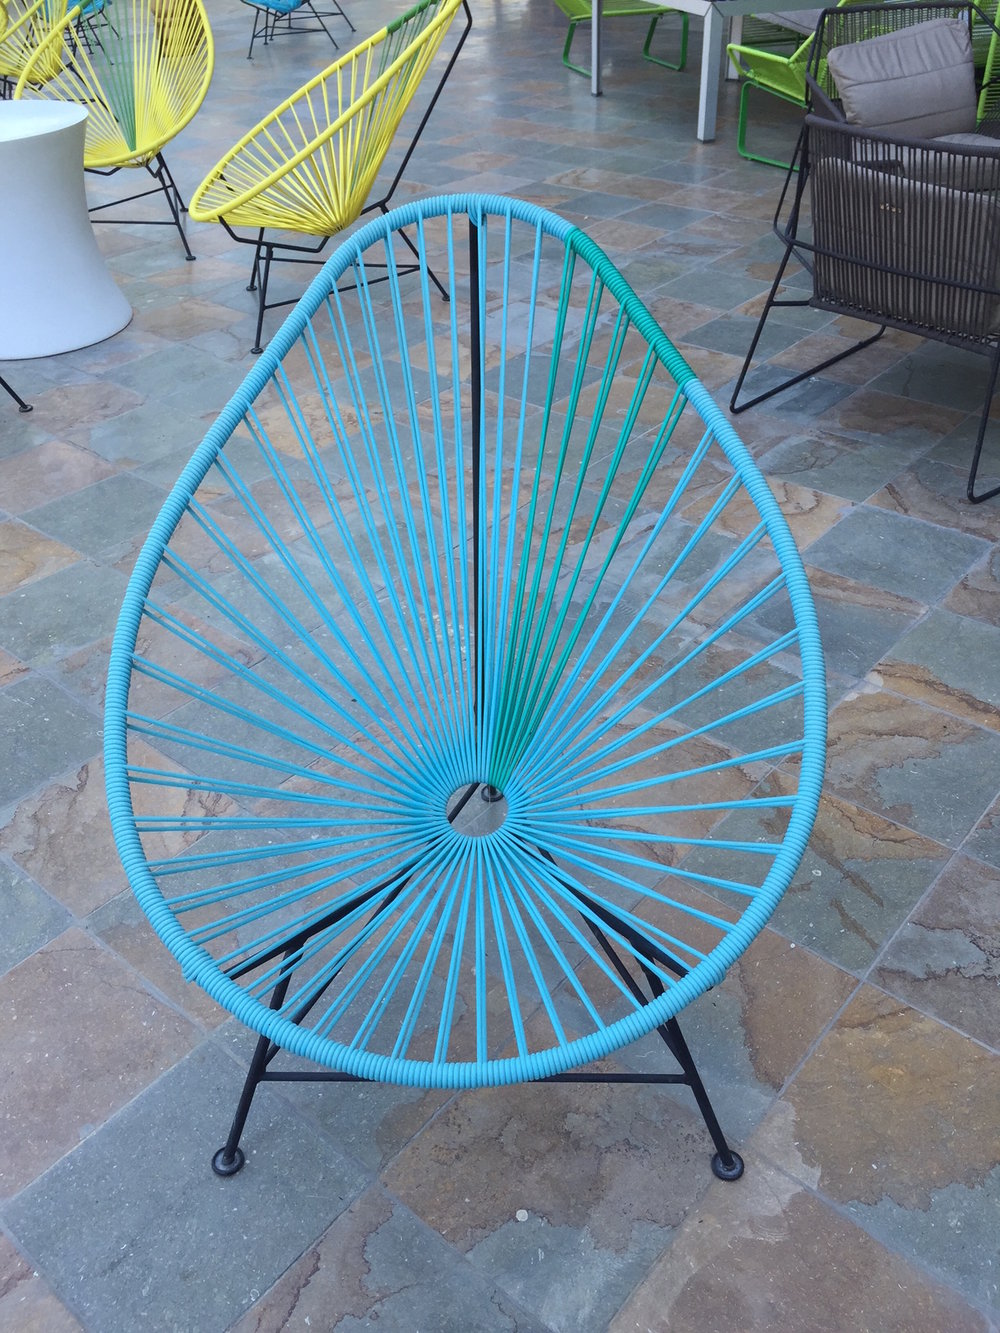 The Egg Chair chair in Costa Rica--comes in multiple colors...and remarkably comfortable. View Product Website